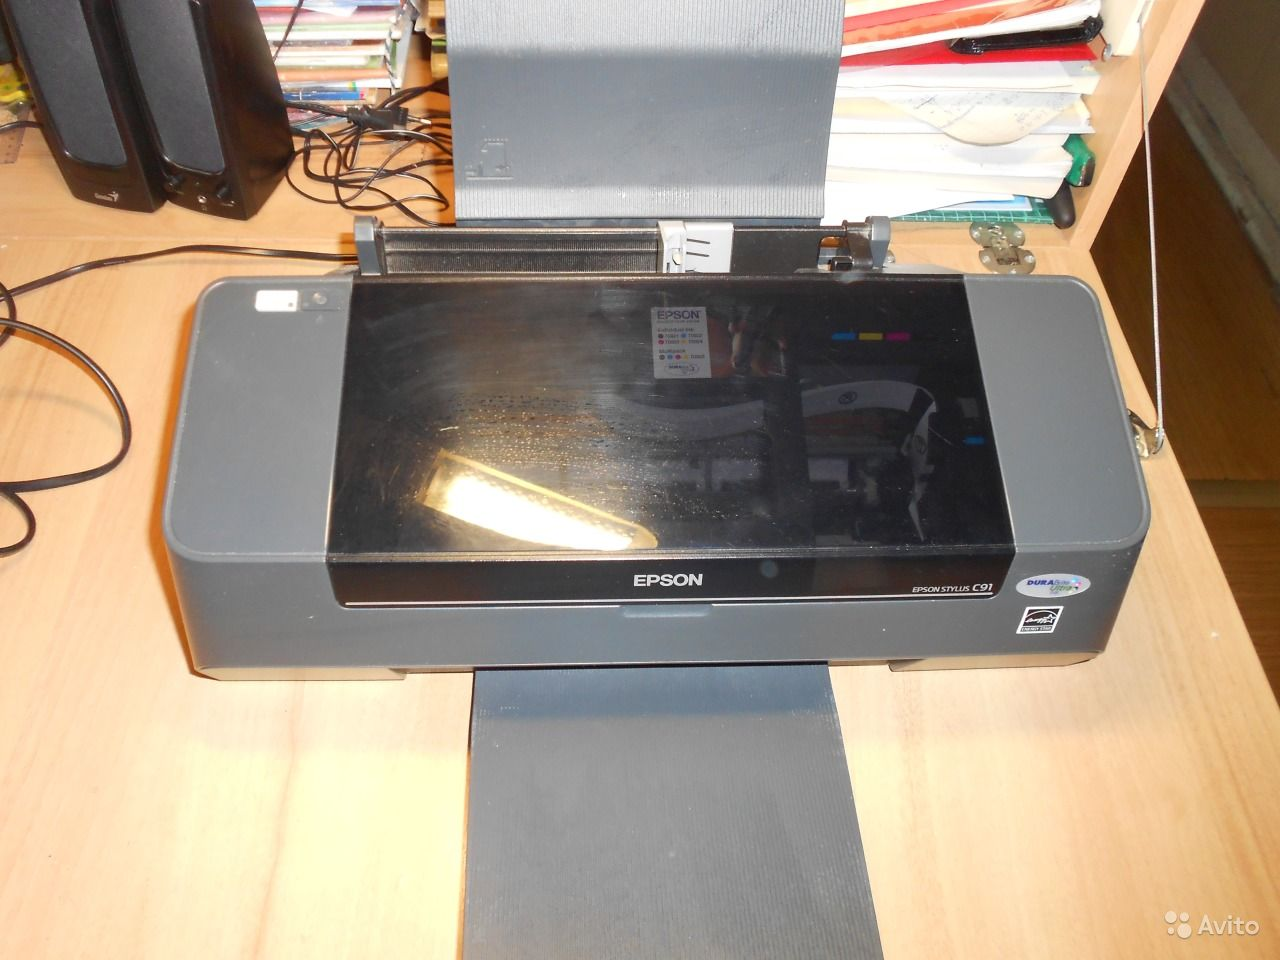 Epson stylus photo rx600 driver download Latest Epson printer news, updates and rumours